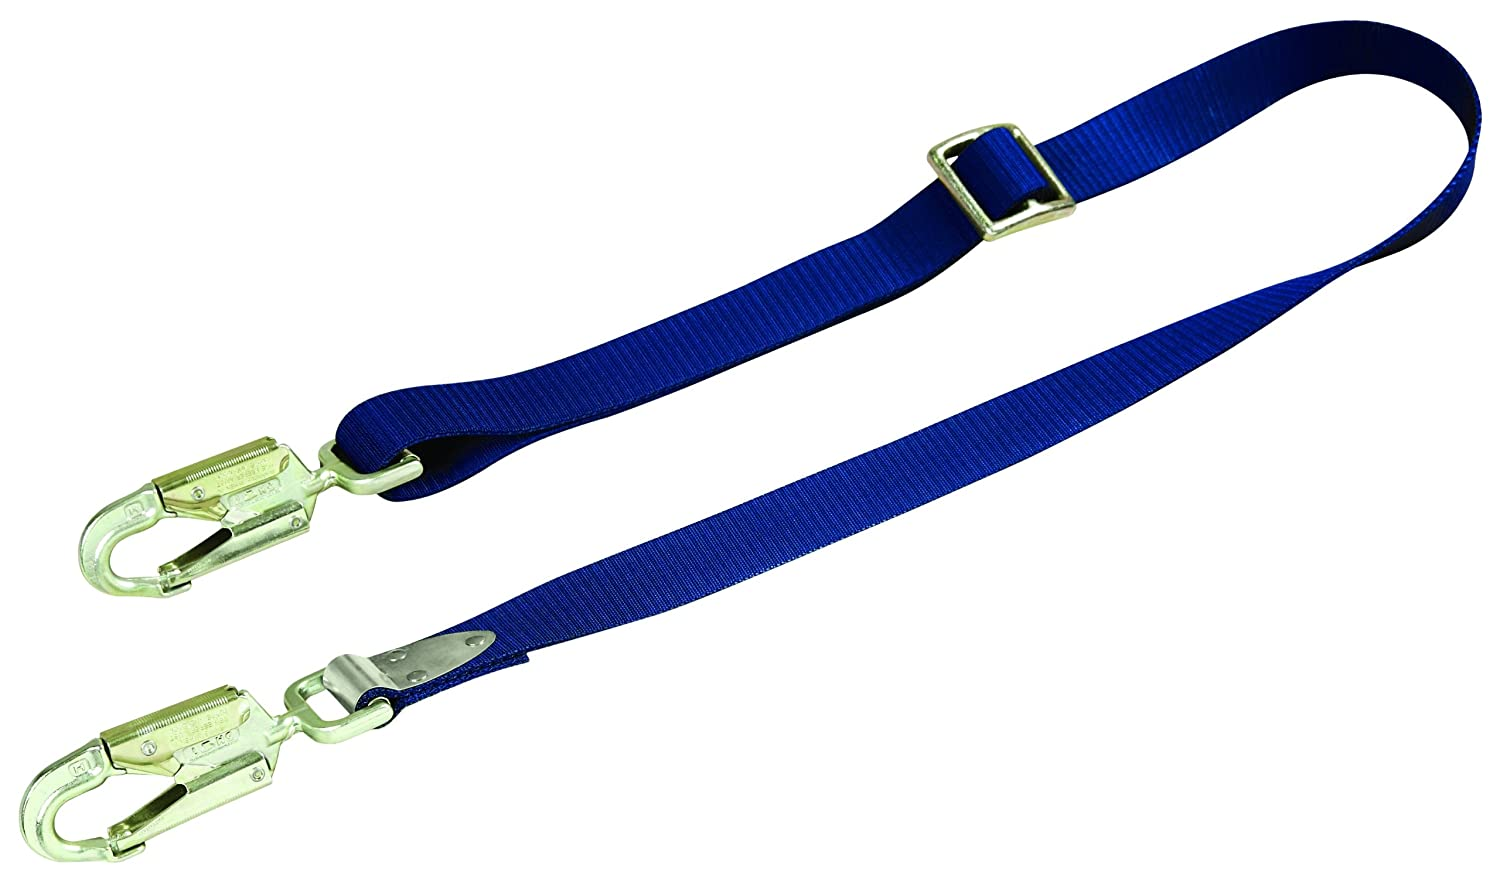 3M DBI-SALA 1234030 Adjustable Web Positioning Lanyard, 6-Foot Single-Leg, With Swiveling Snap Hooks At Each End, Blue by 3M Fall Protection Business B00HQ20RHQ